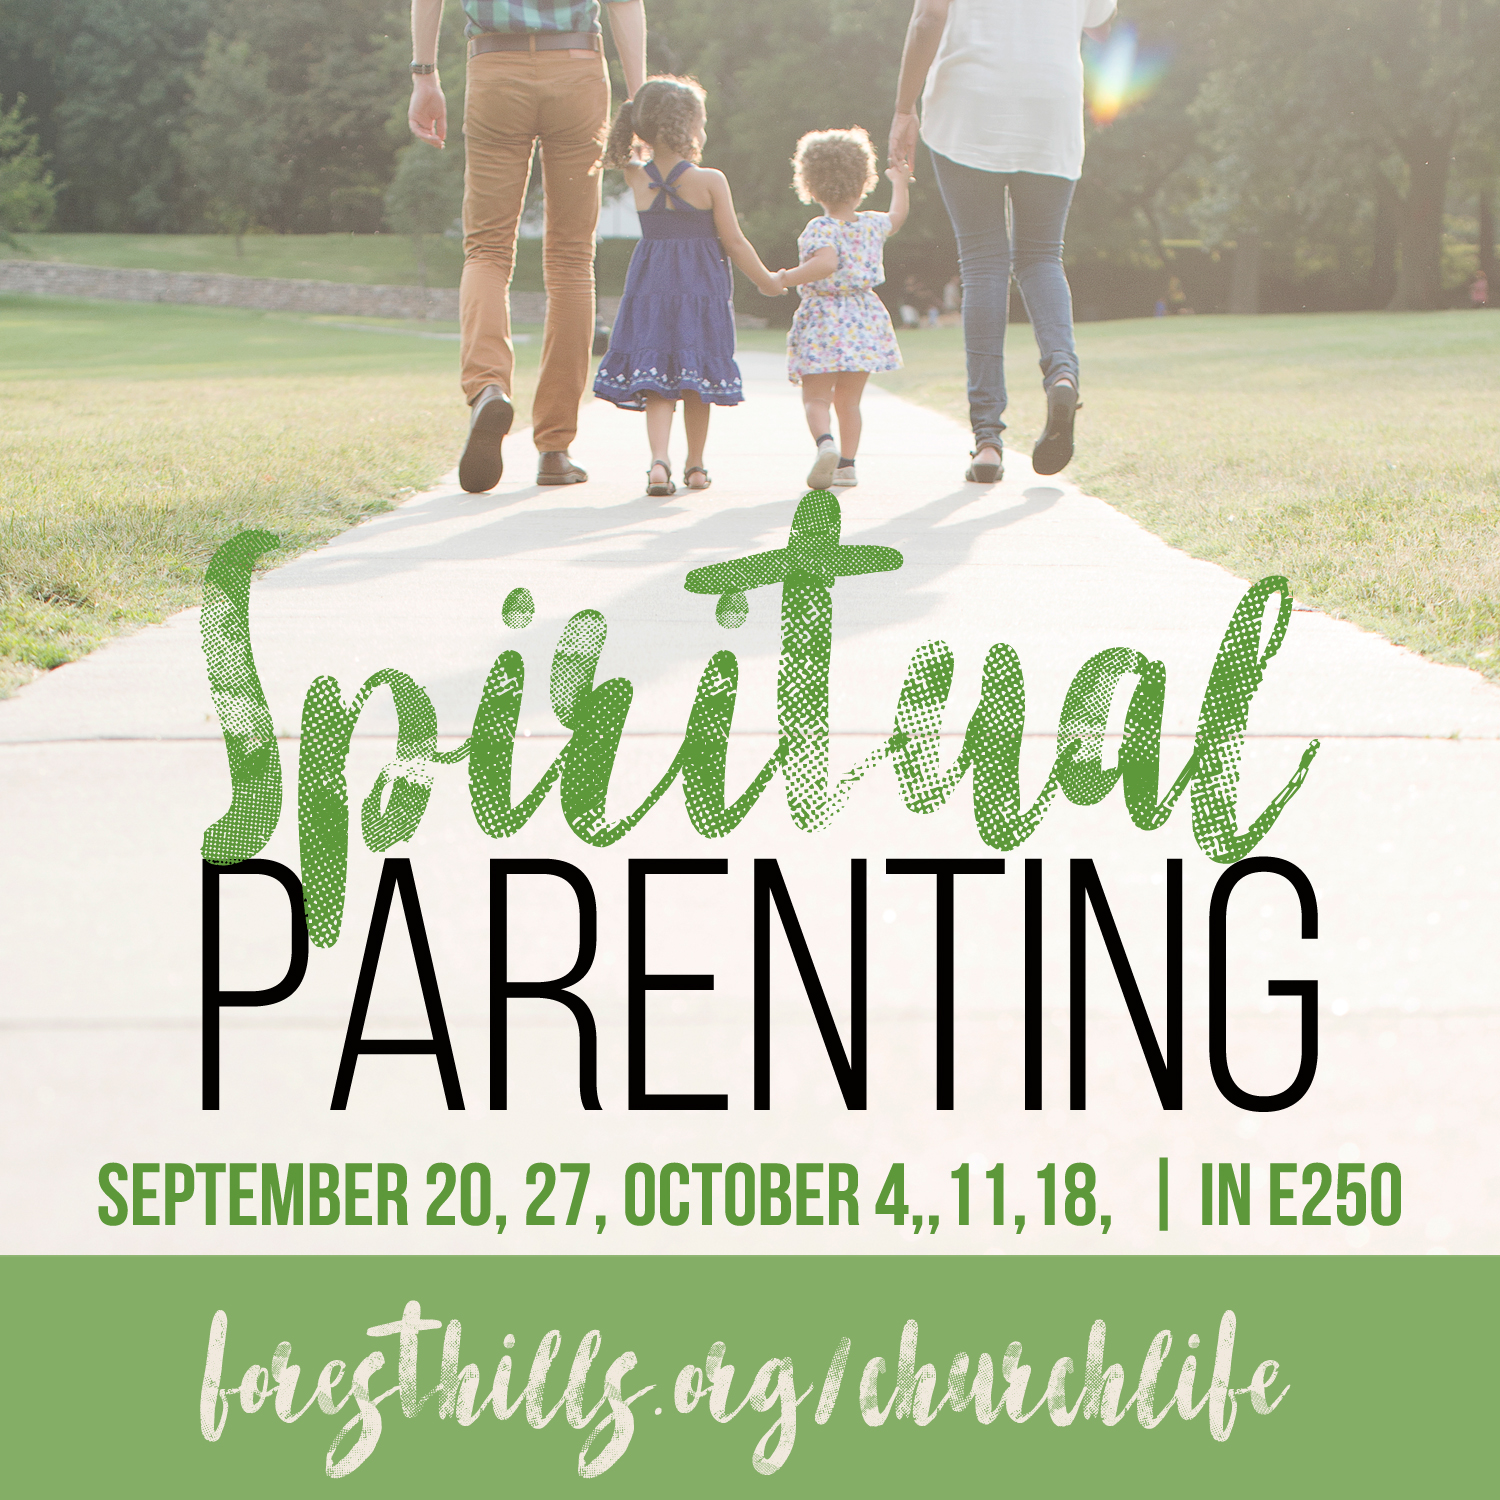 It's hard enough to train kids to behave, but good behavior isn't what Jesus calls for in the Bible. Spiritual Parenting introduces the simple concept that parents depend on God to create an environment God can use to beckon their children to faith The study shares practical examples and biblical insight on the spiritual role of parenting. Dates are 9/20, 27, 10/4,11,18, 25 at 6:30 pm in E-250. The class will be taught by weekly reading, videos during the sessions, and discussion with other participants. RSVP to  andrew@foresthills.org  to reserve your copy of the book.